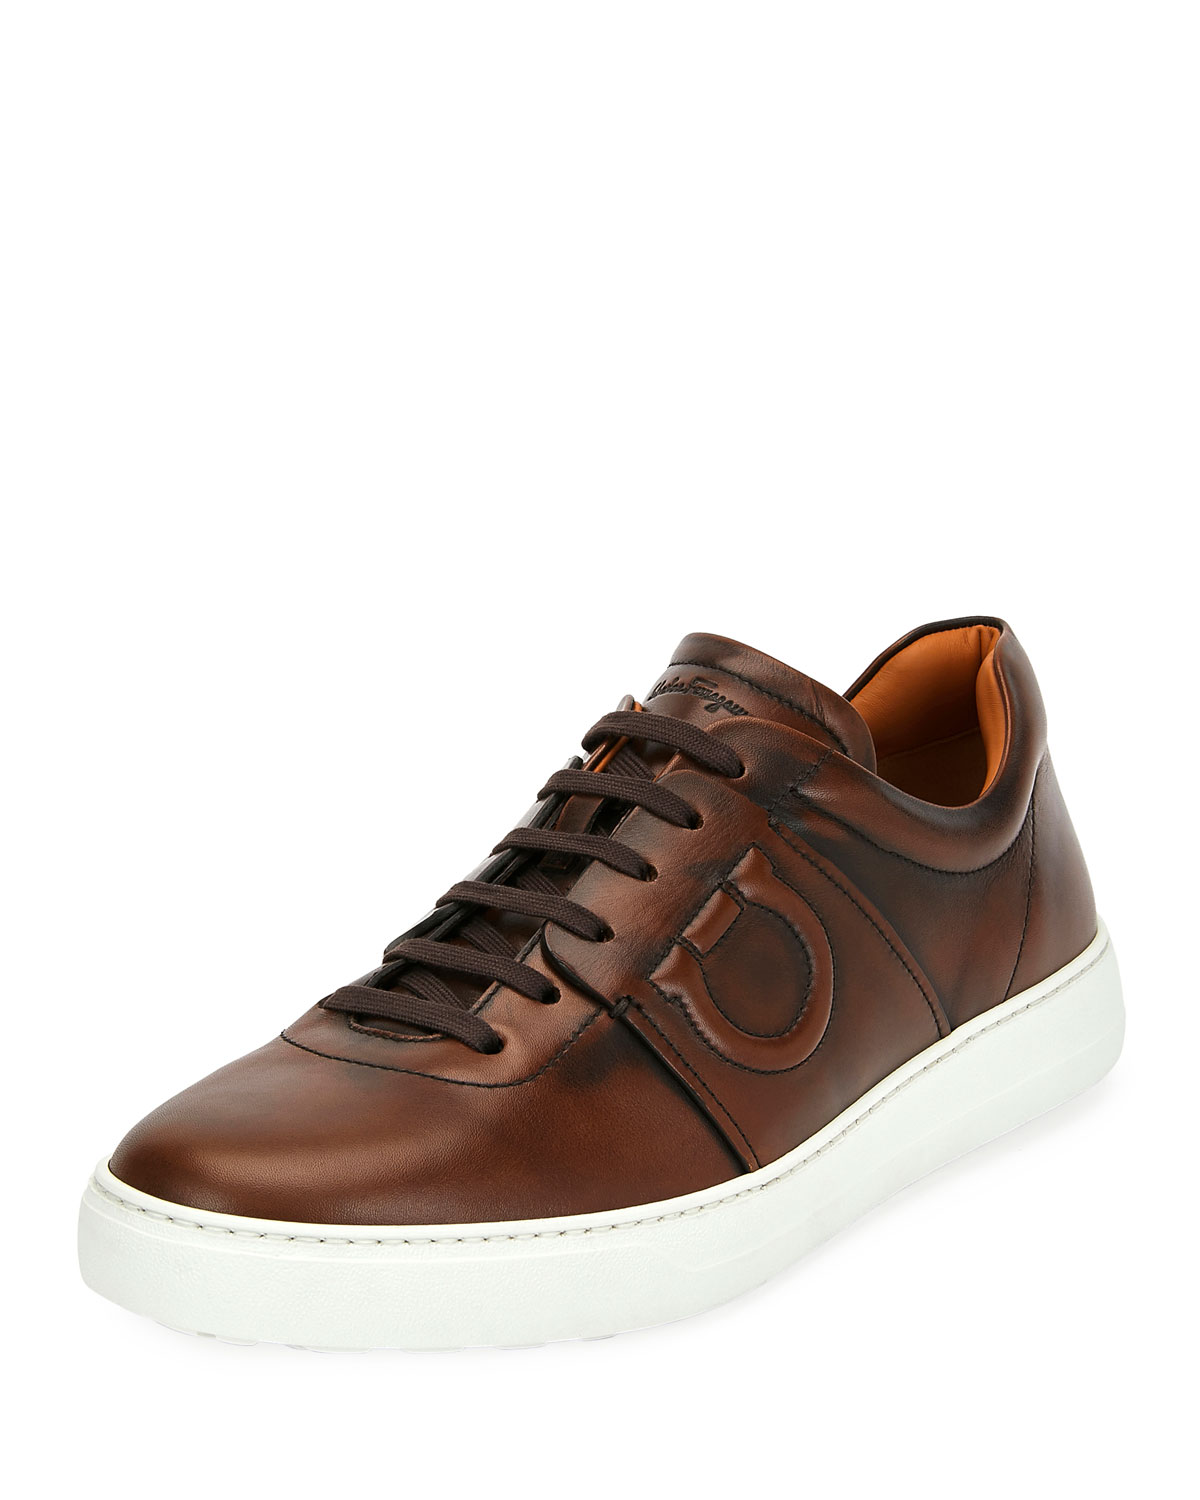 Cult 6 Burnished Leather Low-Top